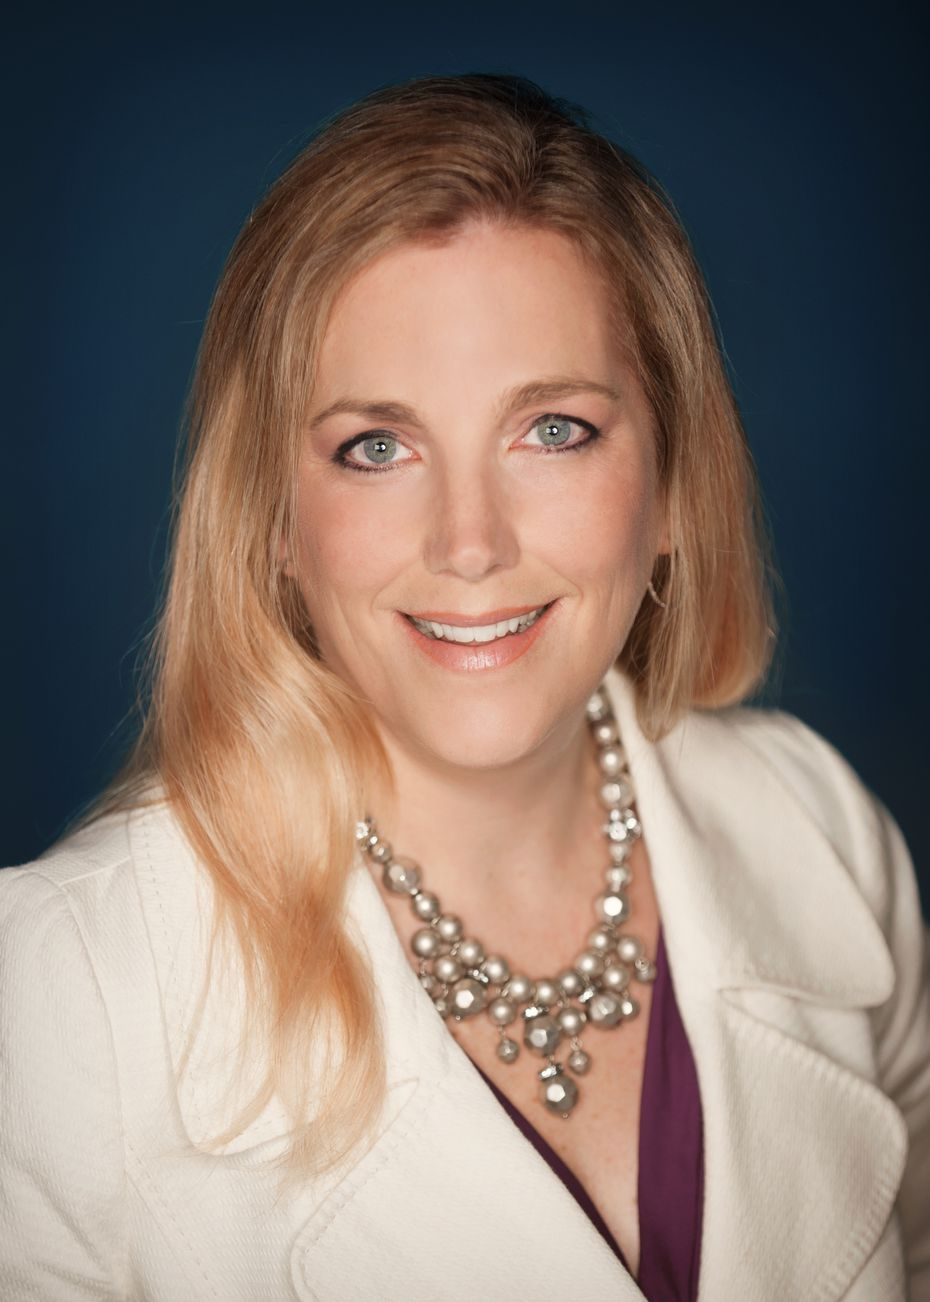 Stephanie Kinser, executive vice president of enterprise solutions for Salesforce